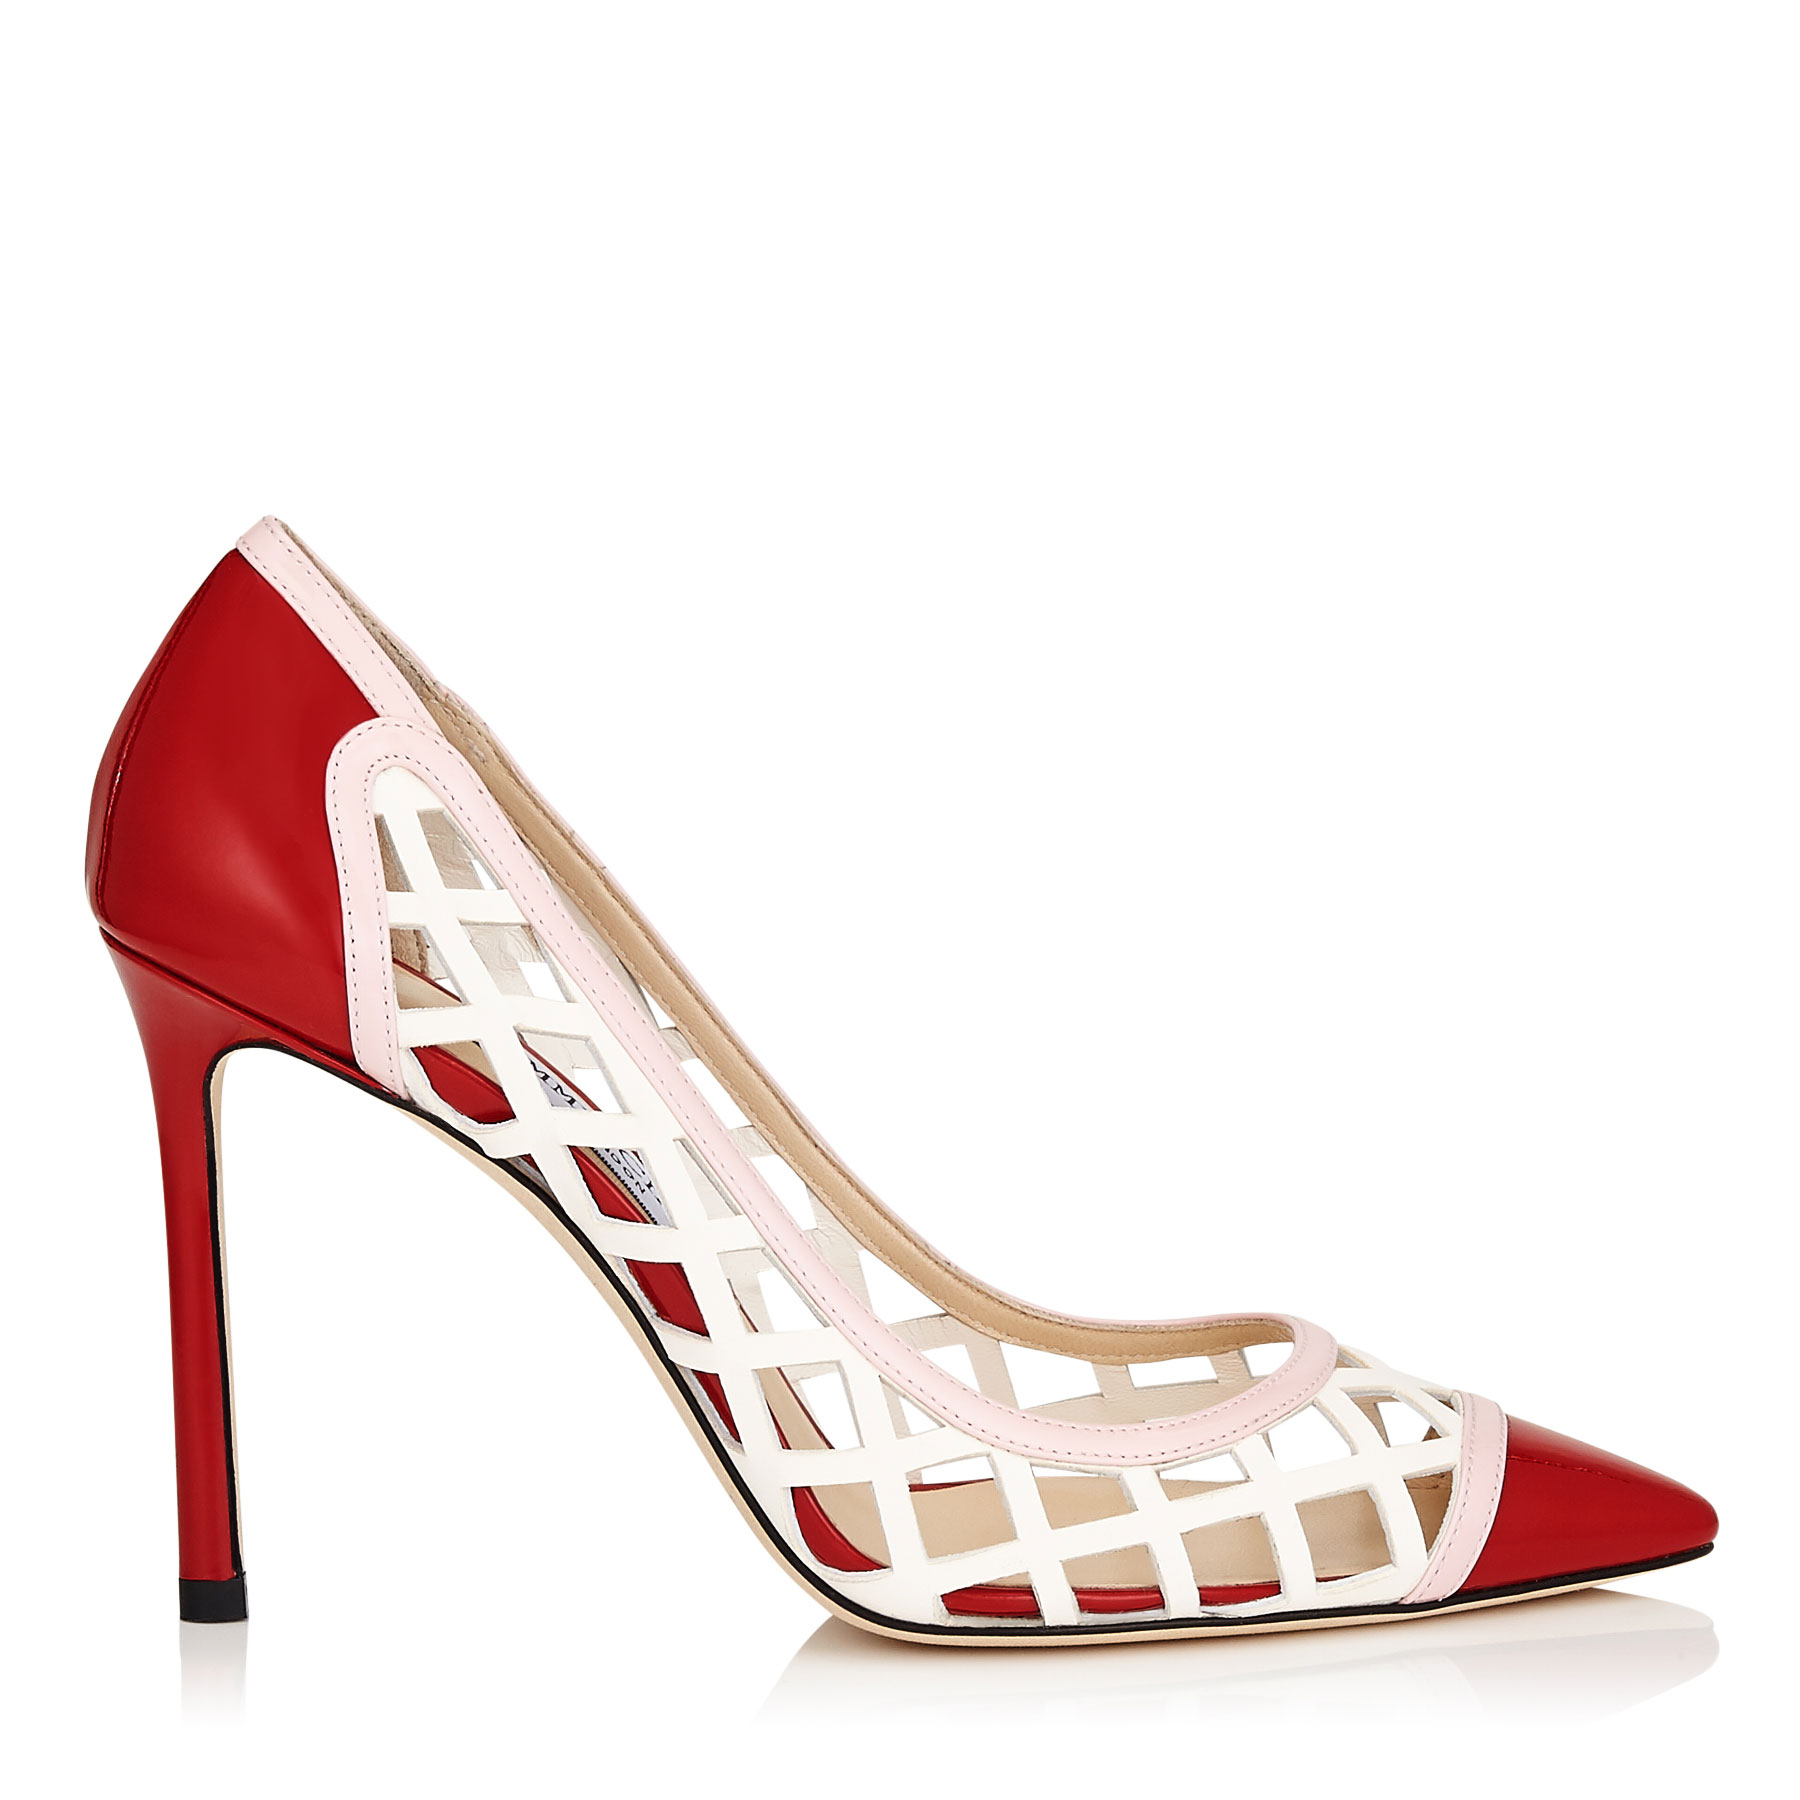 ROMY 100 Rosewater Diamond Perforated Pumps by Jimmy Choo